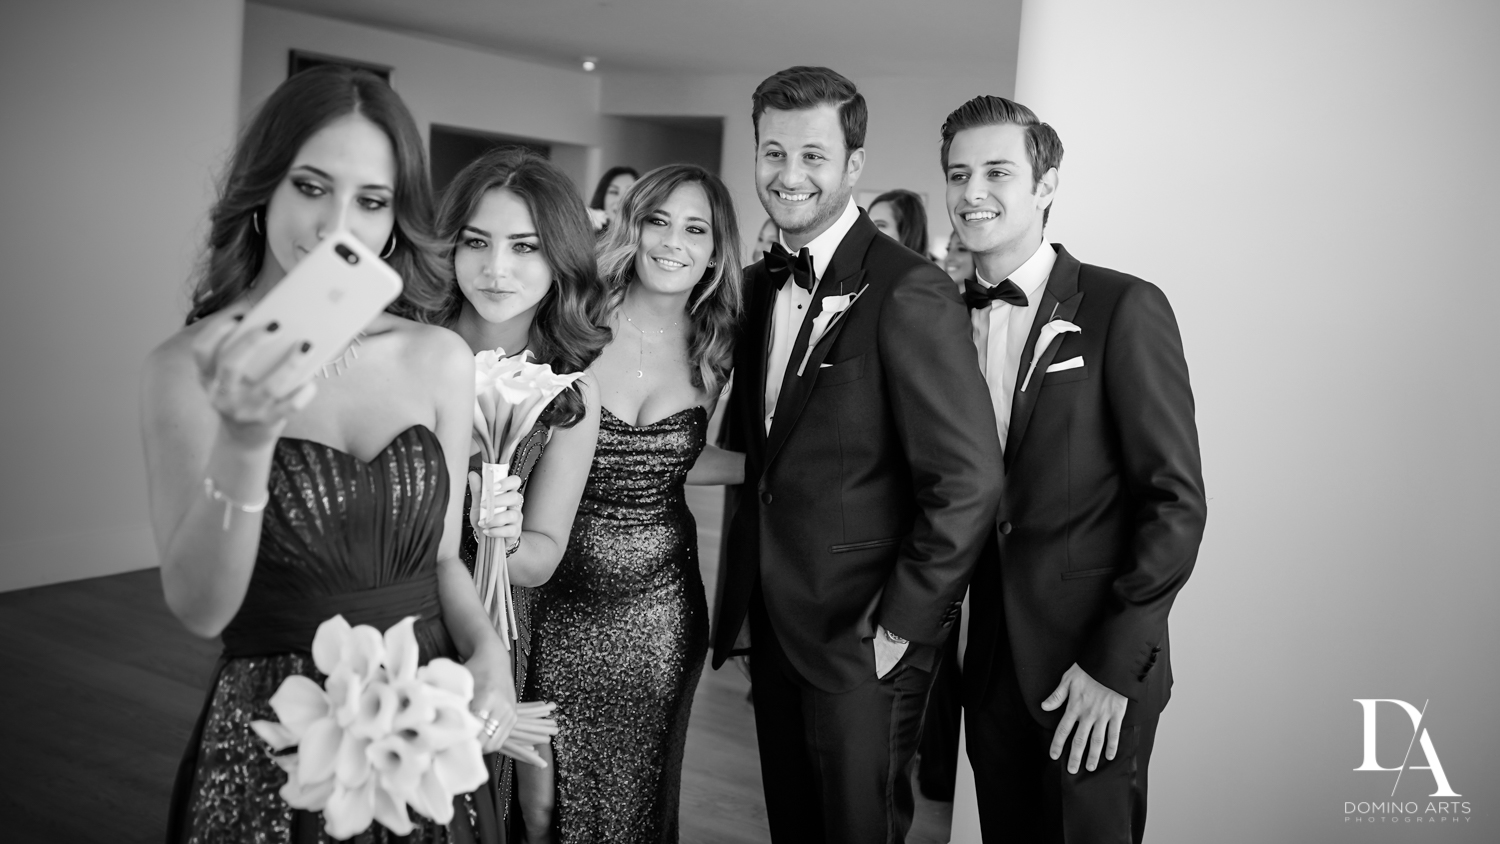 Fun wedding party pictures at Faena Hotel Miami Beach